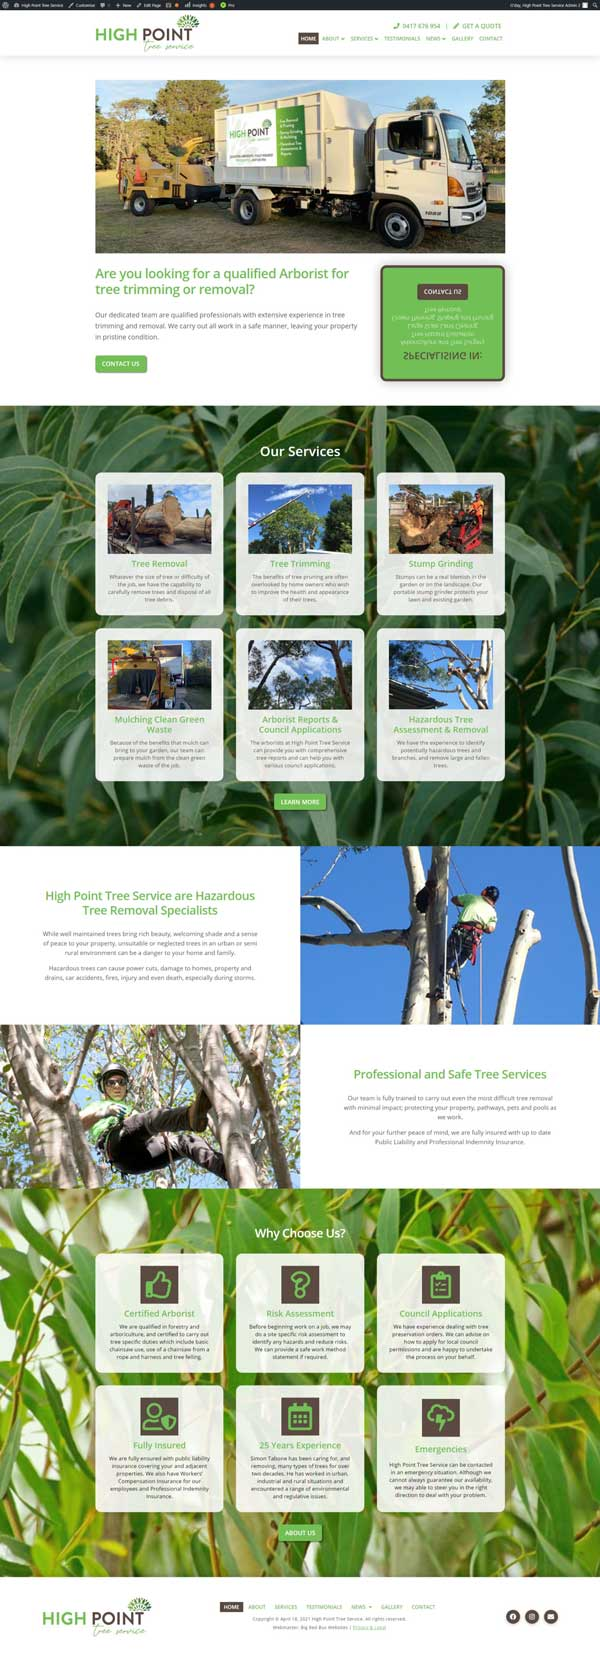 High Point Tree Service website designed by Big Red Bus Websites - ezample 1